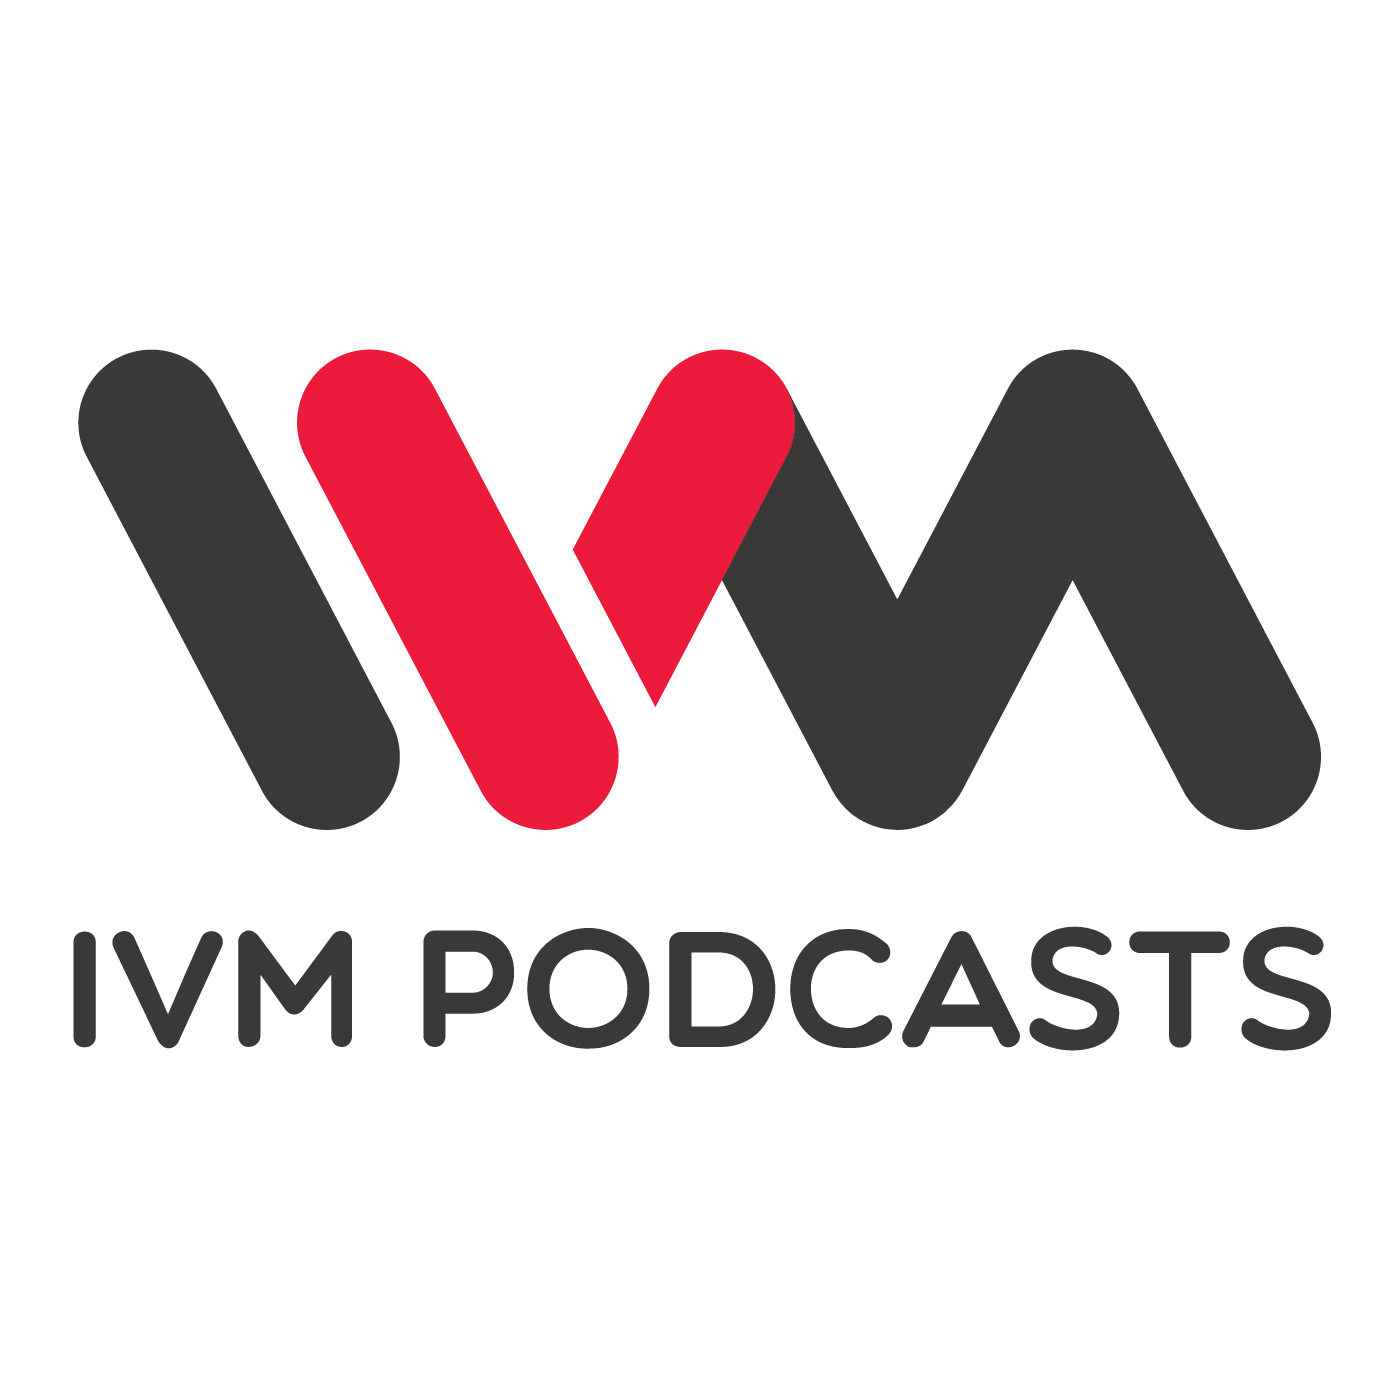 Blog — IVM Podcasts - Indian Podcasts for you to listen to